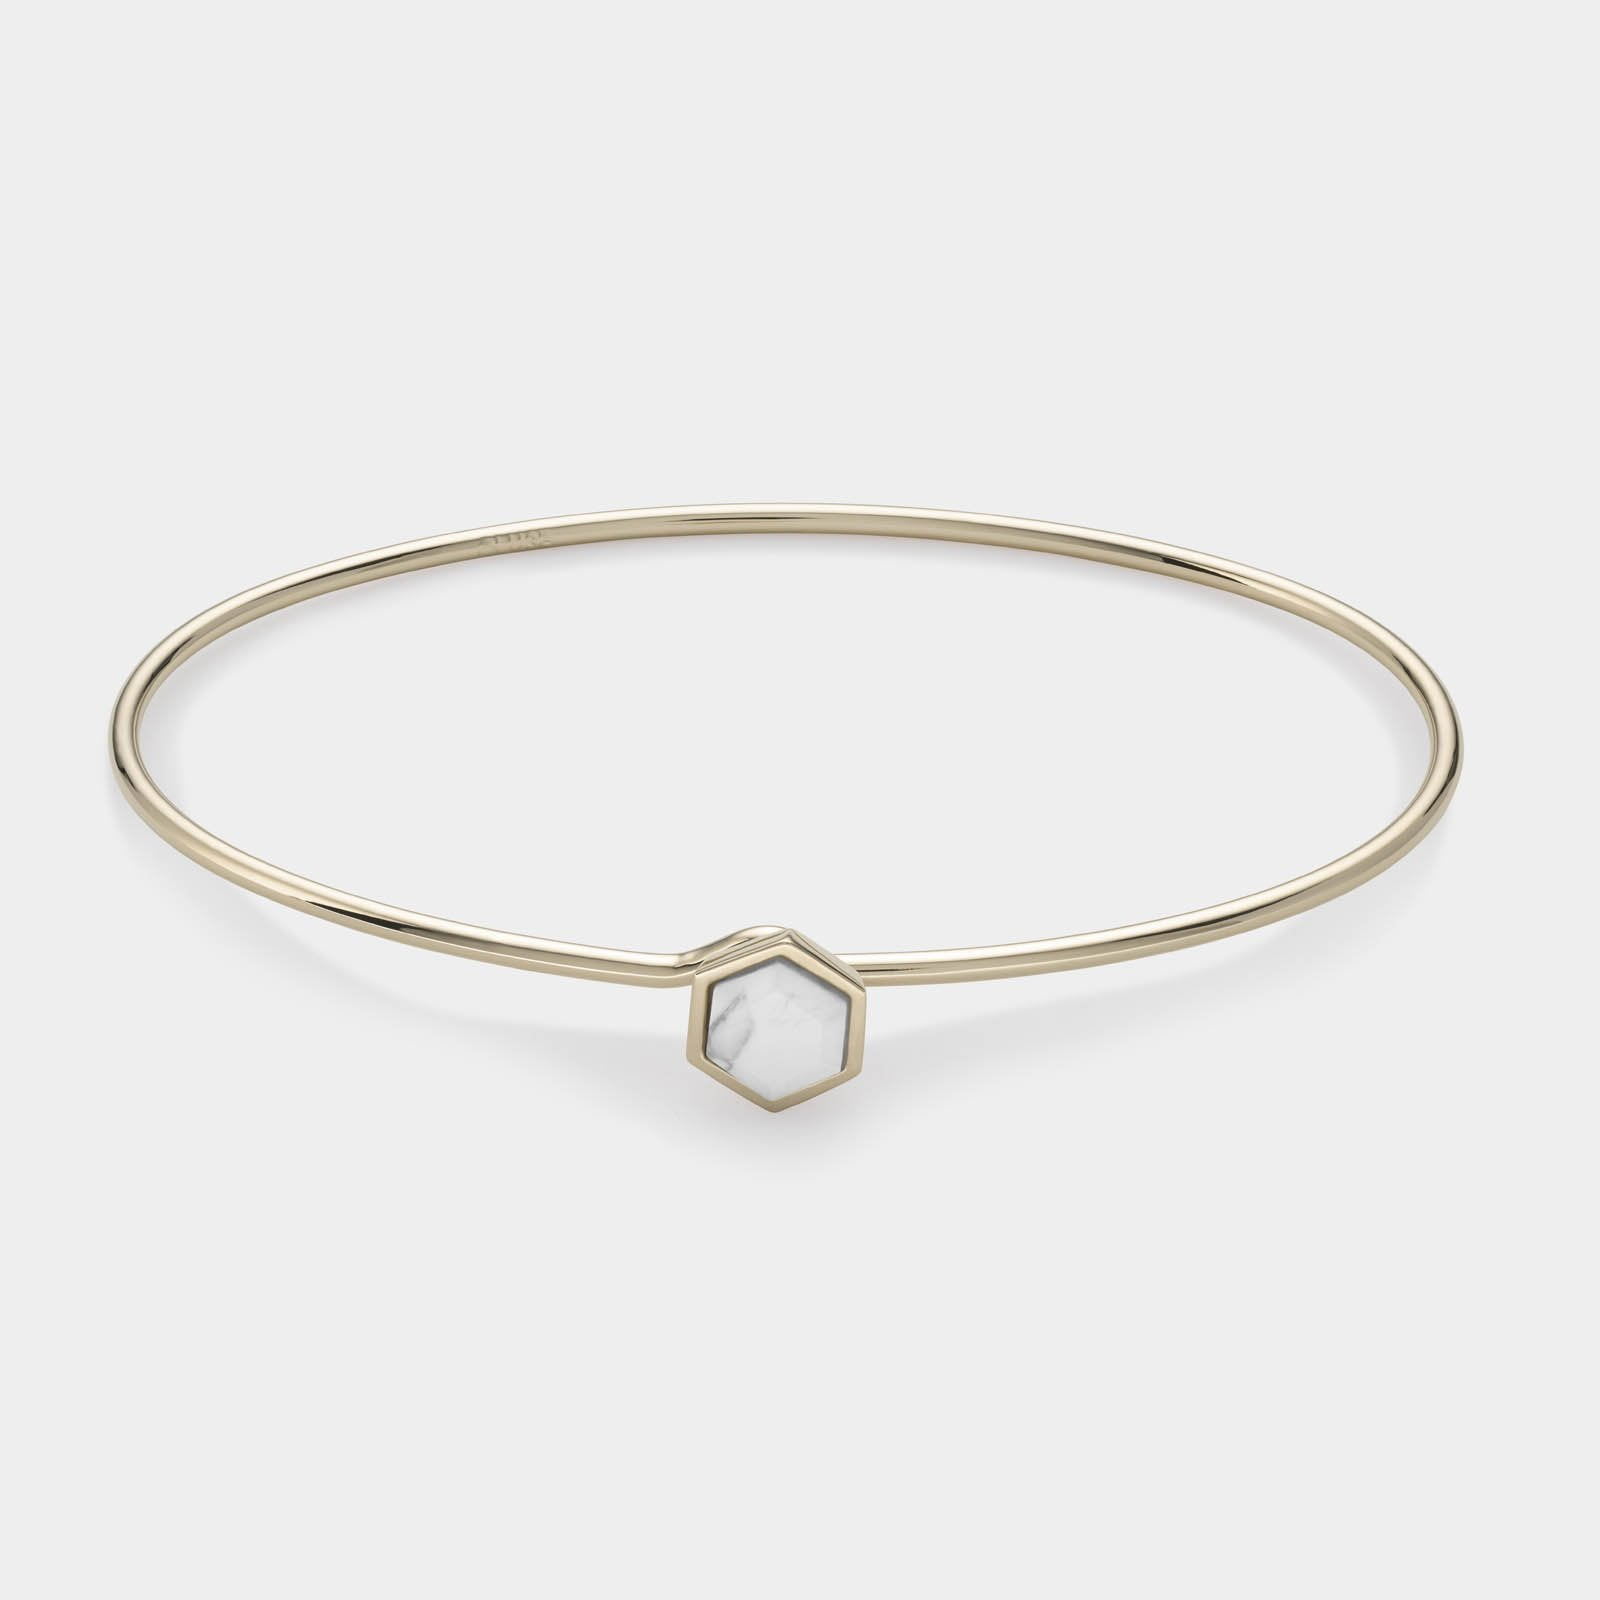 CLUSE Idylle Gold Marble Hexagon Bangle Bracelet CLJ11002 - Bracciale